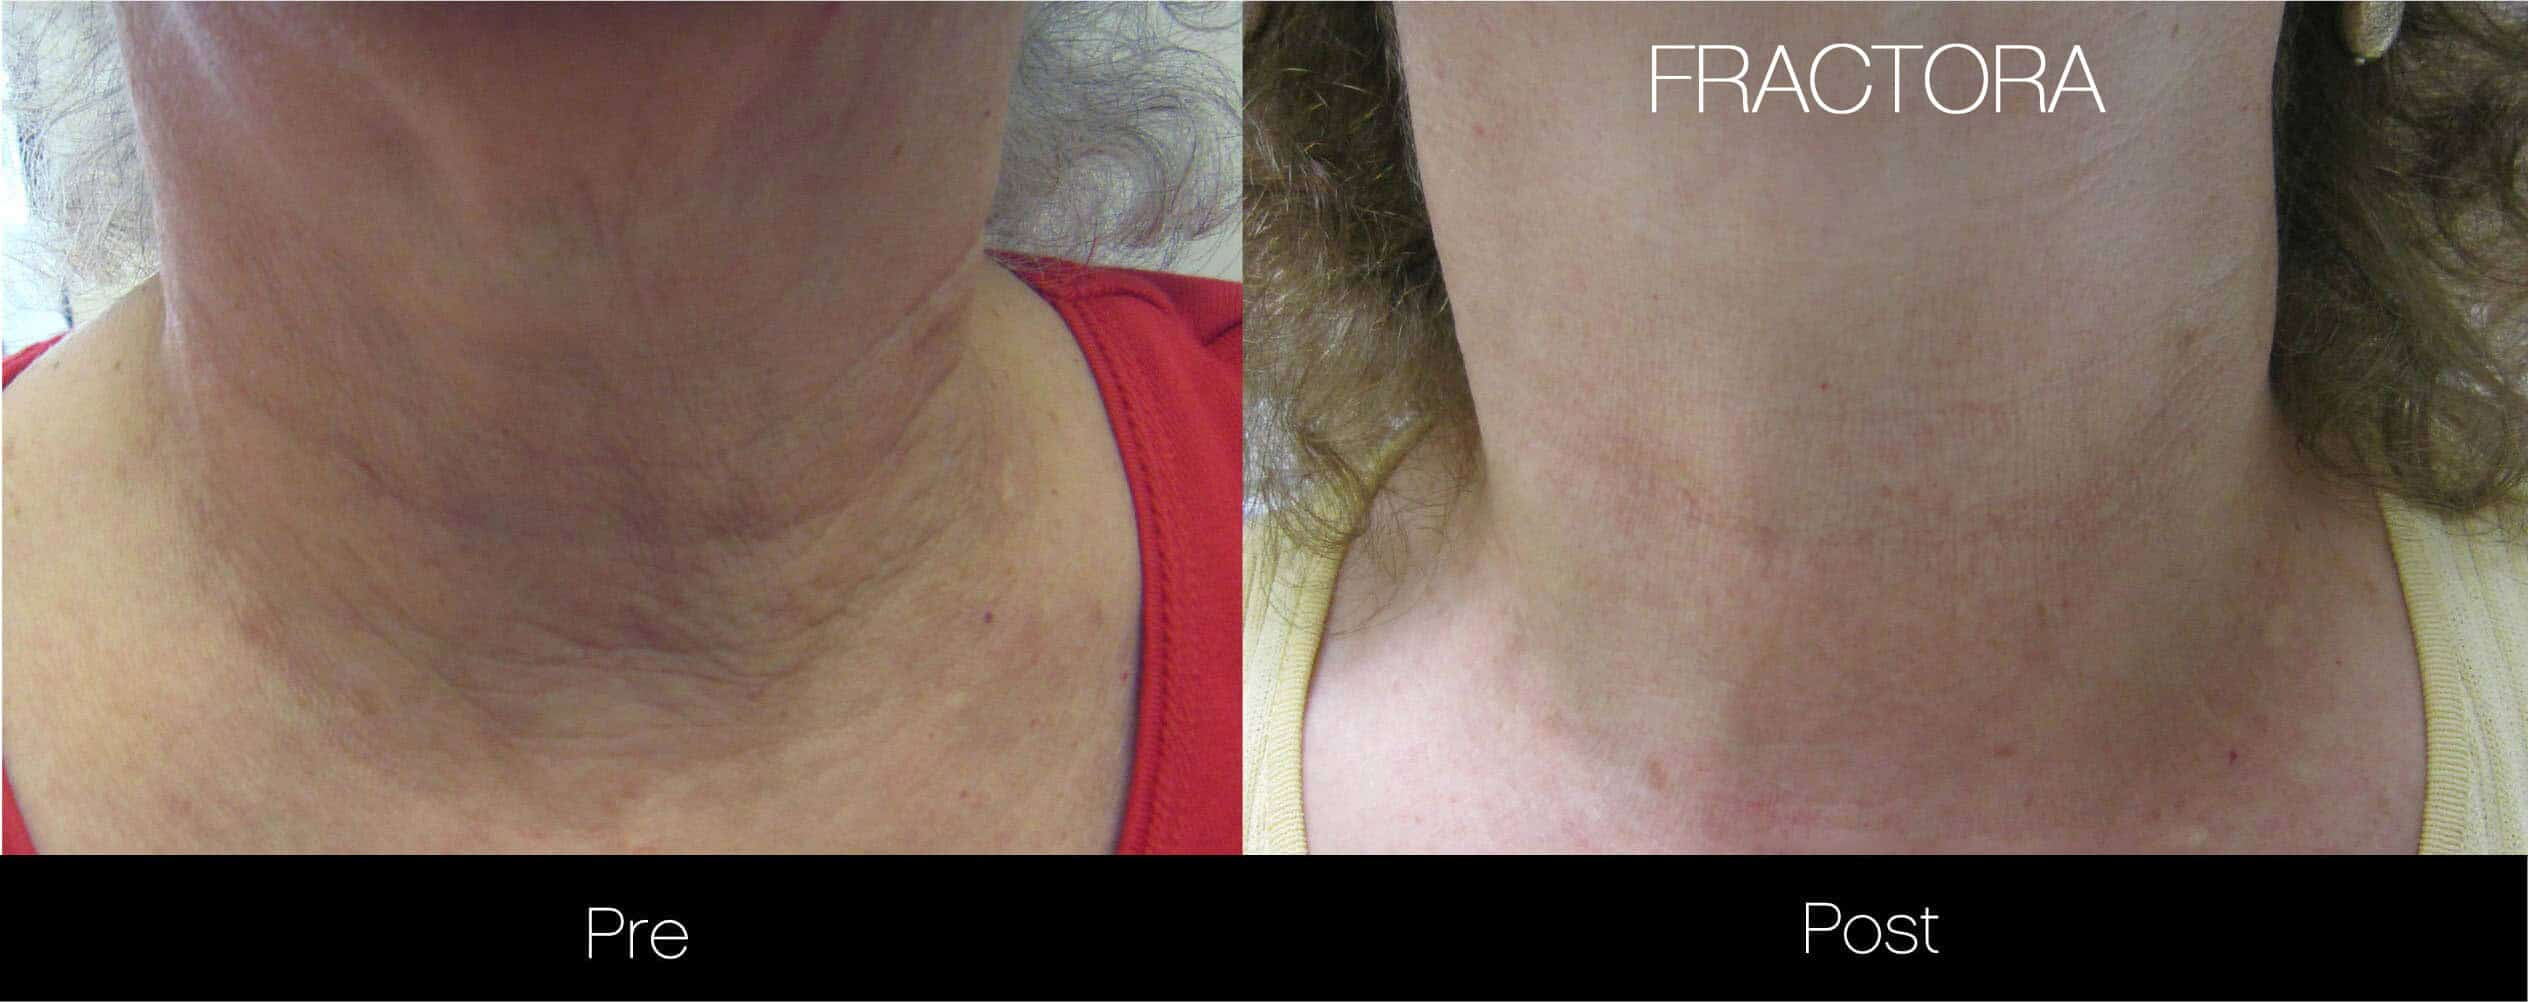 Fractora - Before and After Gallery - Patient Photo 9